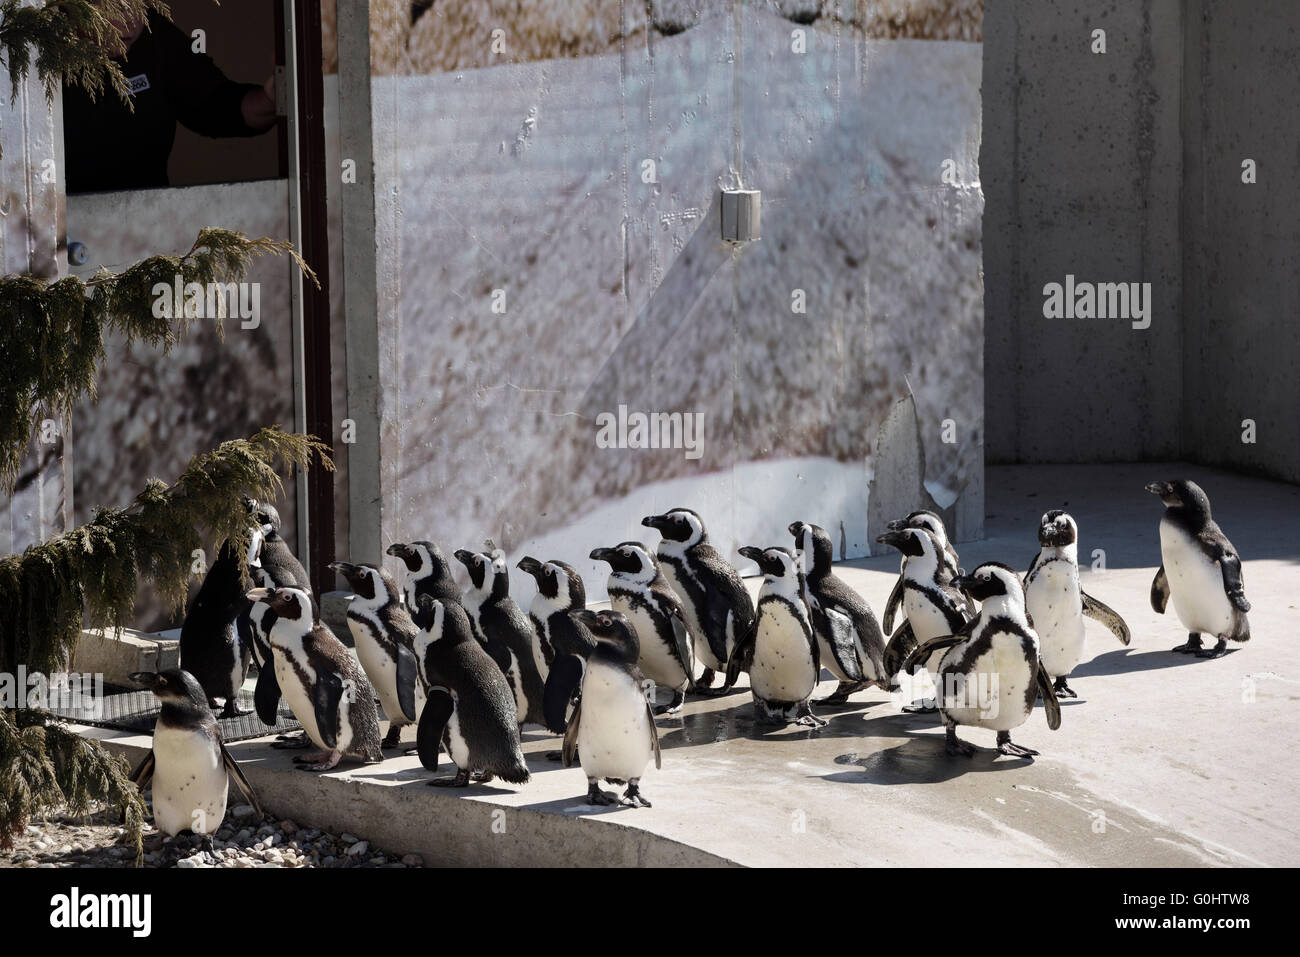 Colony of captive African Penguins lined up at feeding time - Stock Image